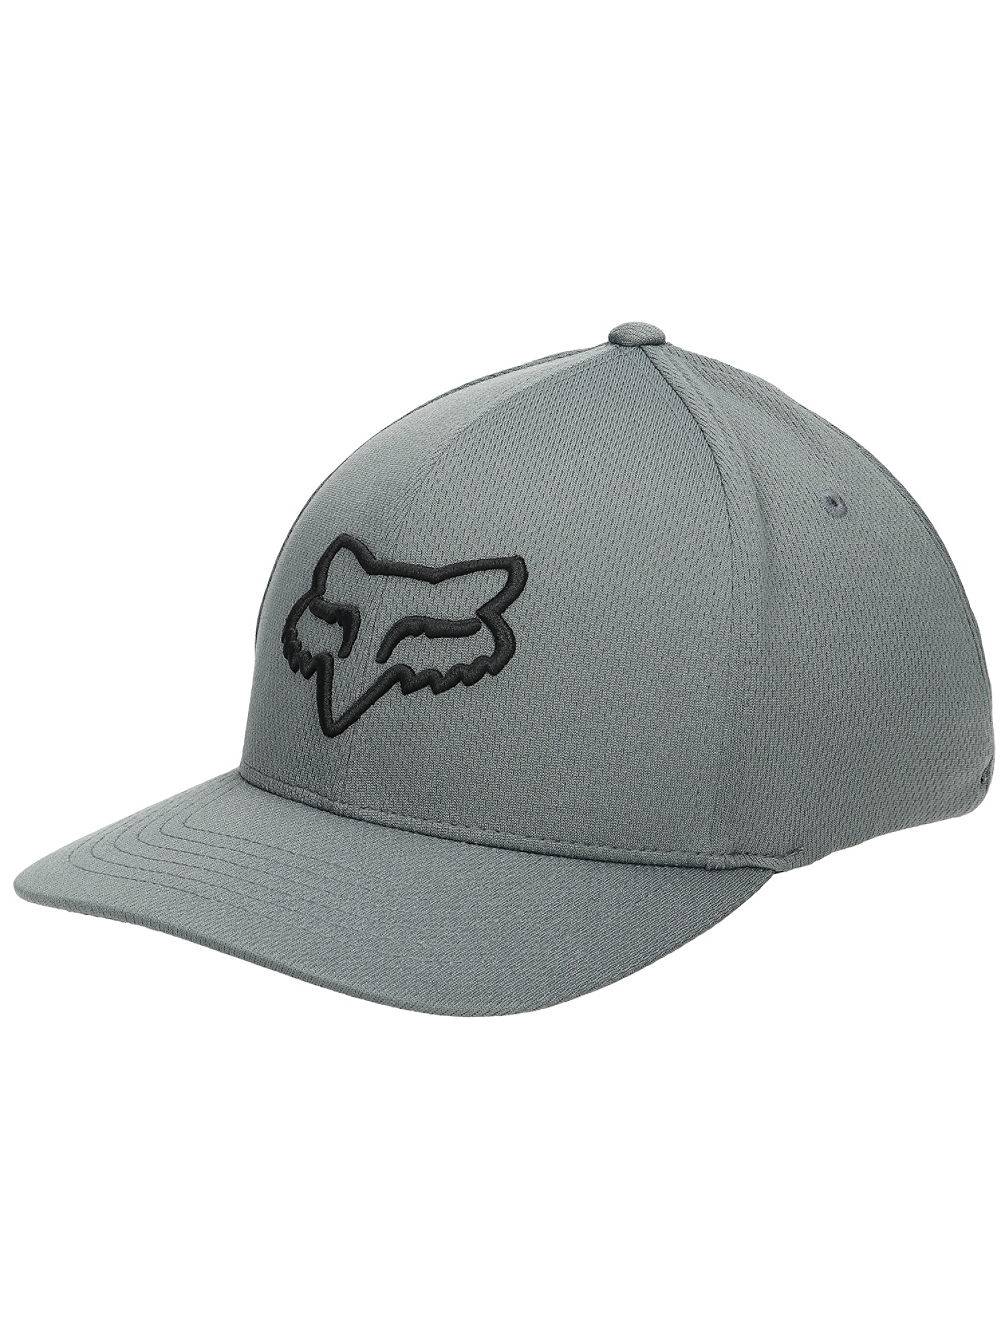 Lithotype Flexfit Cap